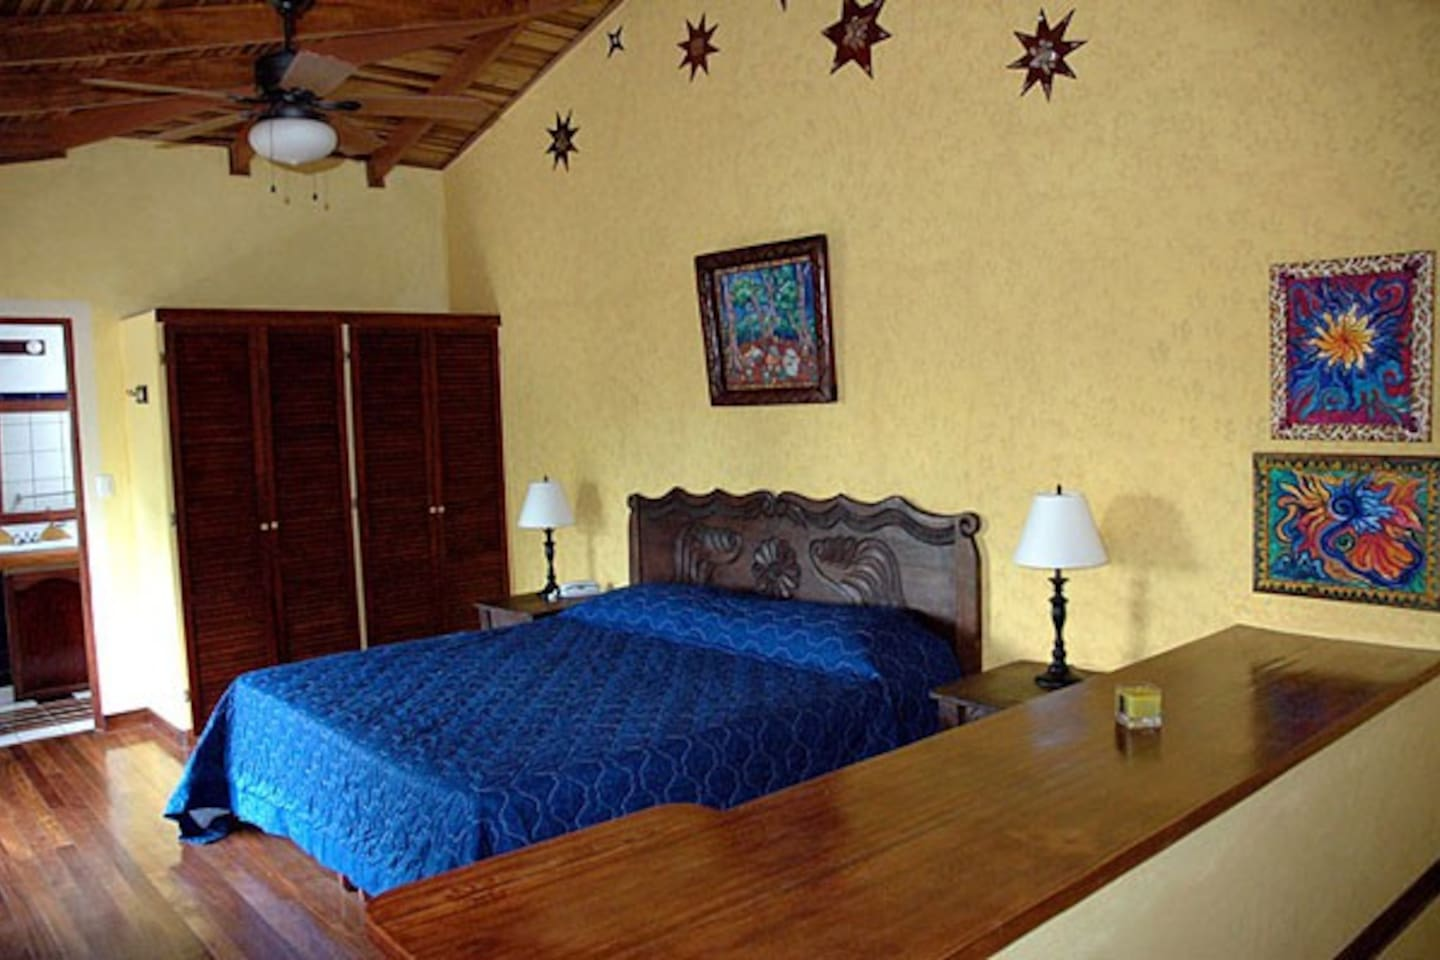 All our rooms have cable TV, wireless internet, telephone, safe and a ceiling fan.